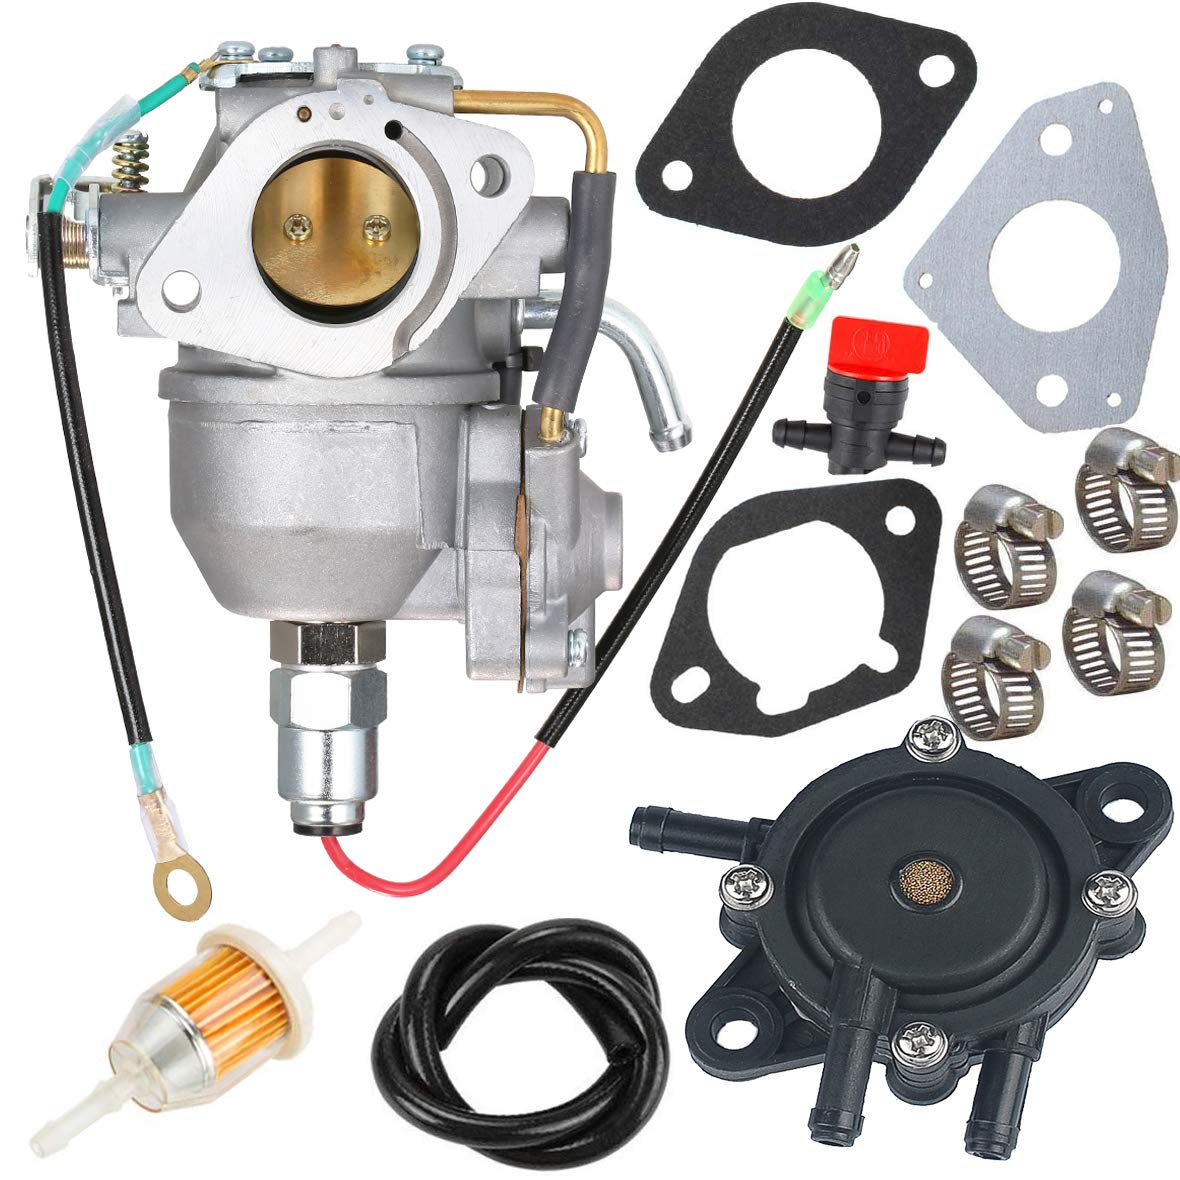 New CV730 Carburetor +Fuel Pump 24 393 04-S 24 393 16-S for Kohler CV730 CV730S CV740 CV740S 25 HP 27 HP Engine 24853102-S 24-853-102-S Carb with Gasket Kit